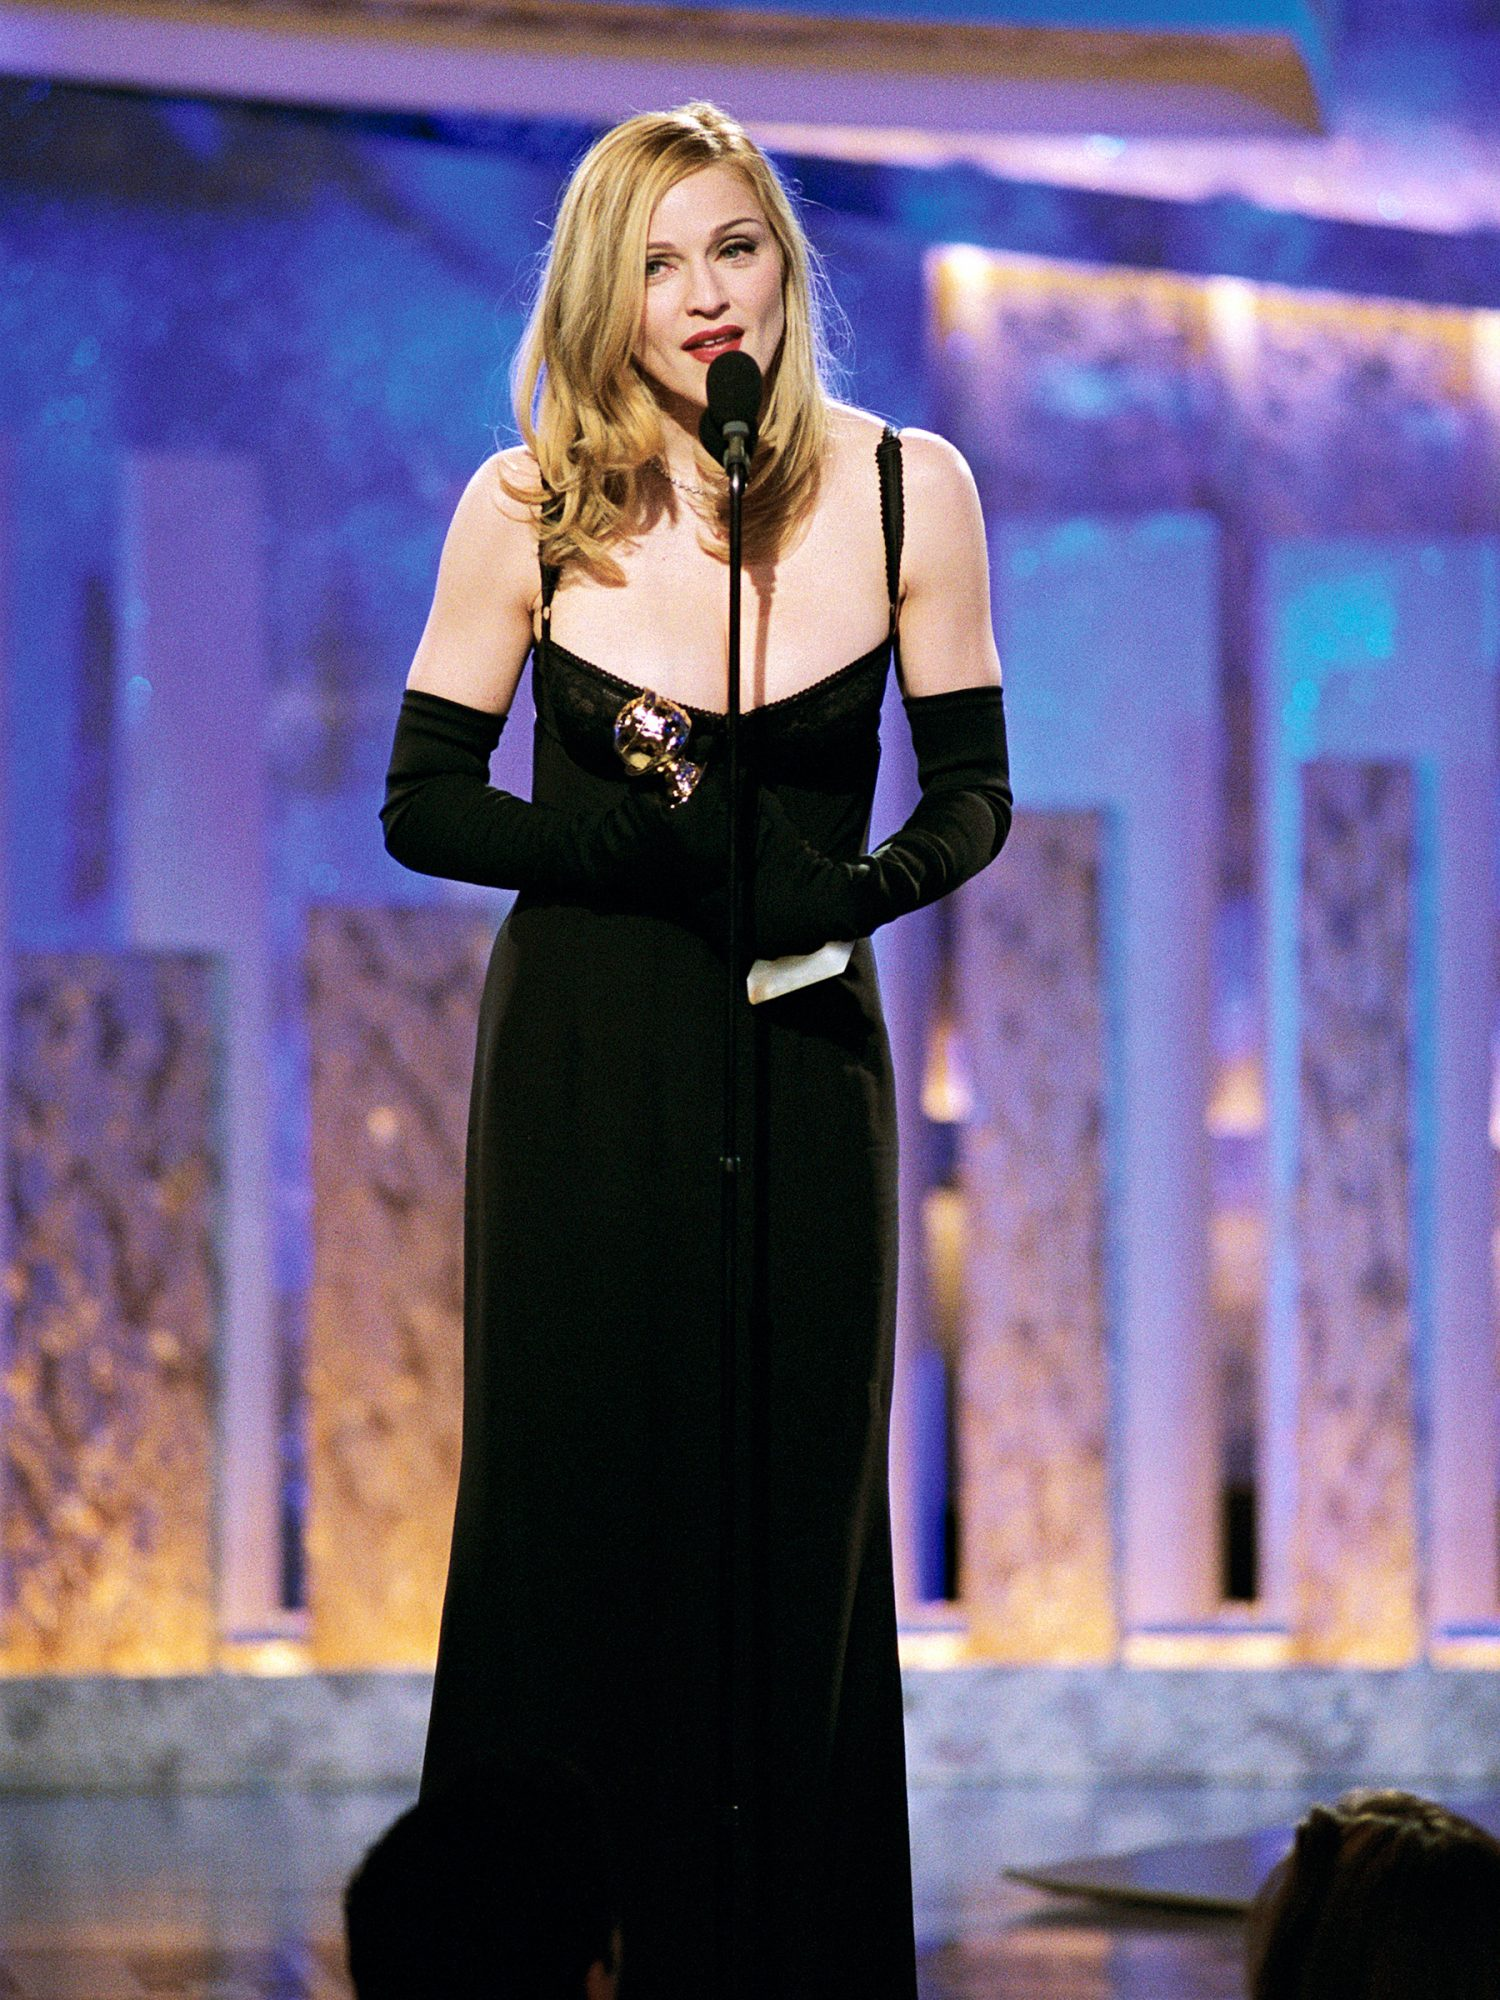 Best Actress in a Musical or Comedy Winner Madonna (Evita)